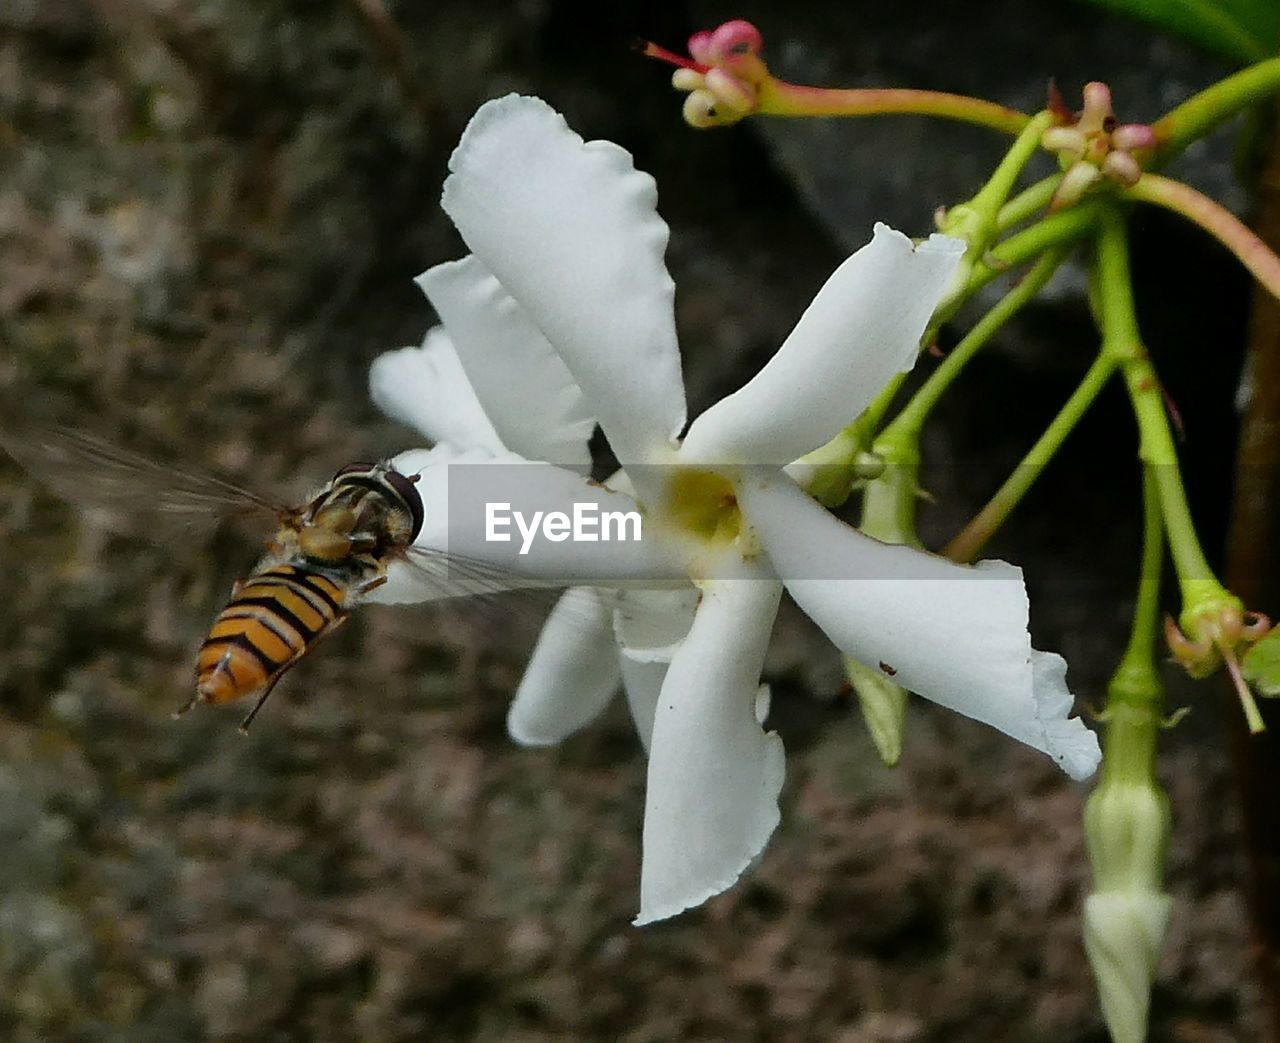 nature, insect, one animal, animals in the wild, no people, animal themes, close-up, beauty in nature, day, outdoors, fragility, flower, bee, freshness, flower head